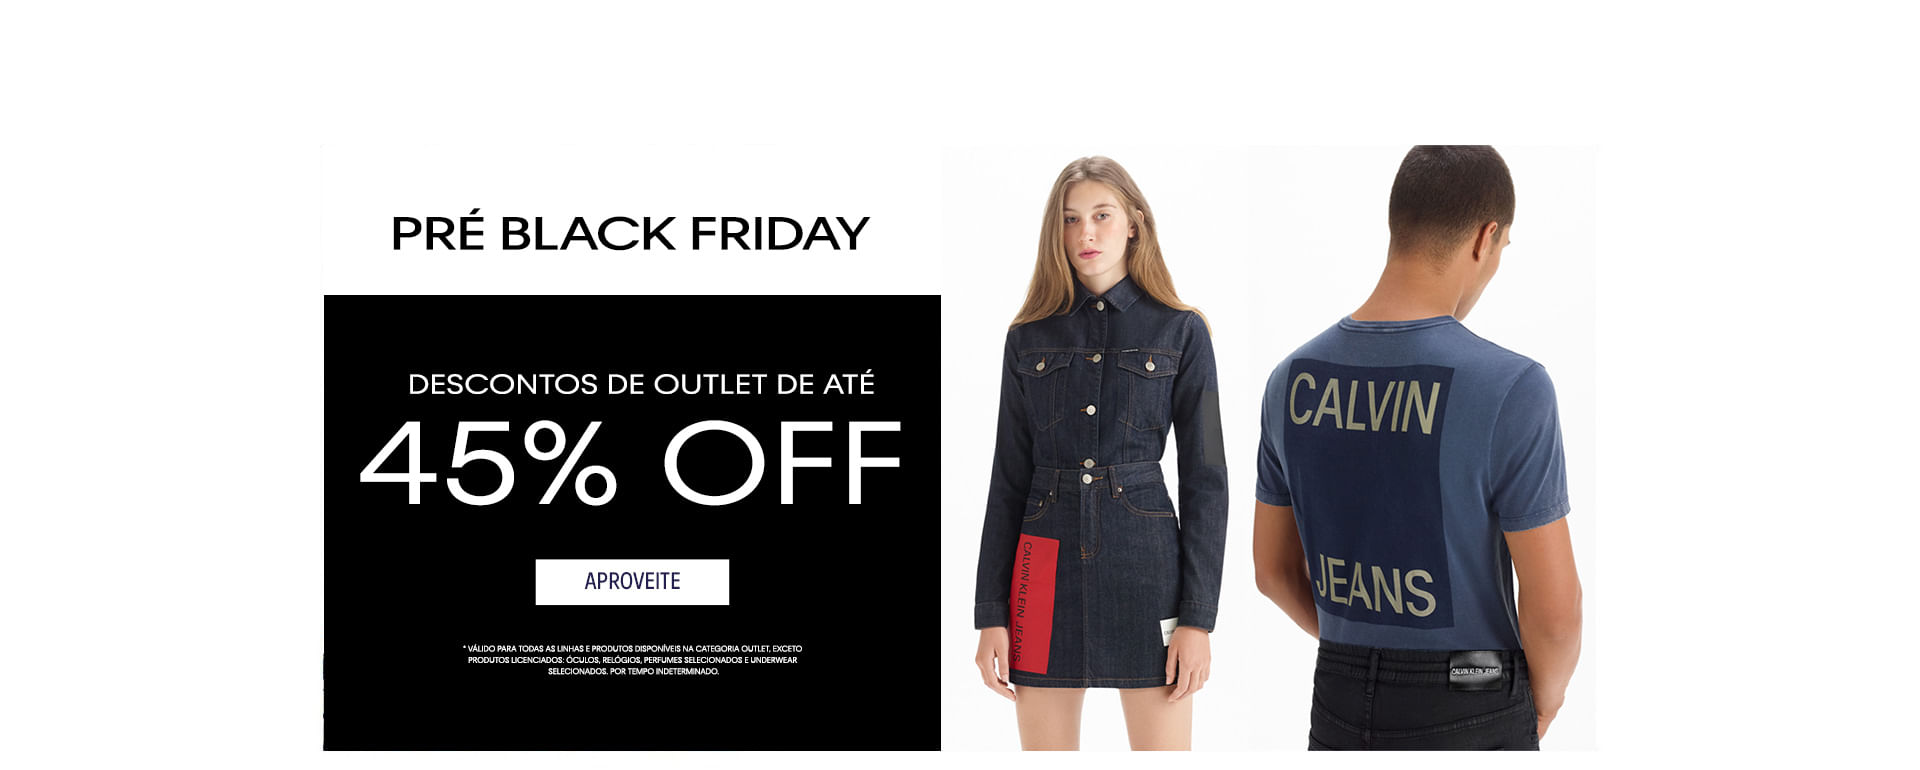 PRÉ BLACK FRIDAY - Descontos de Outlet de até 45% OFF